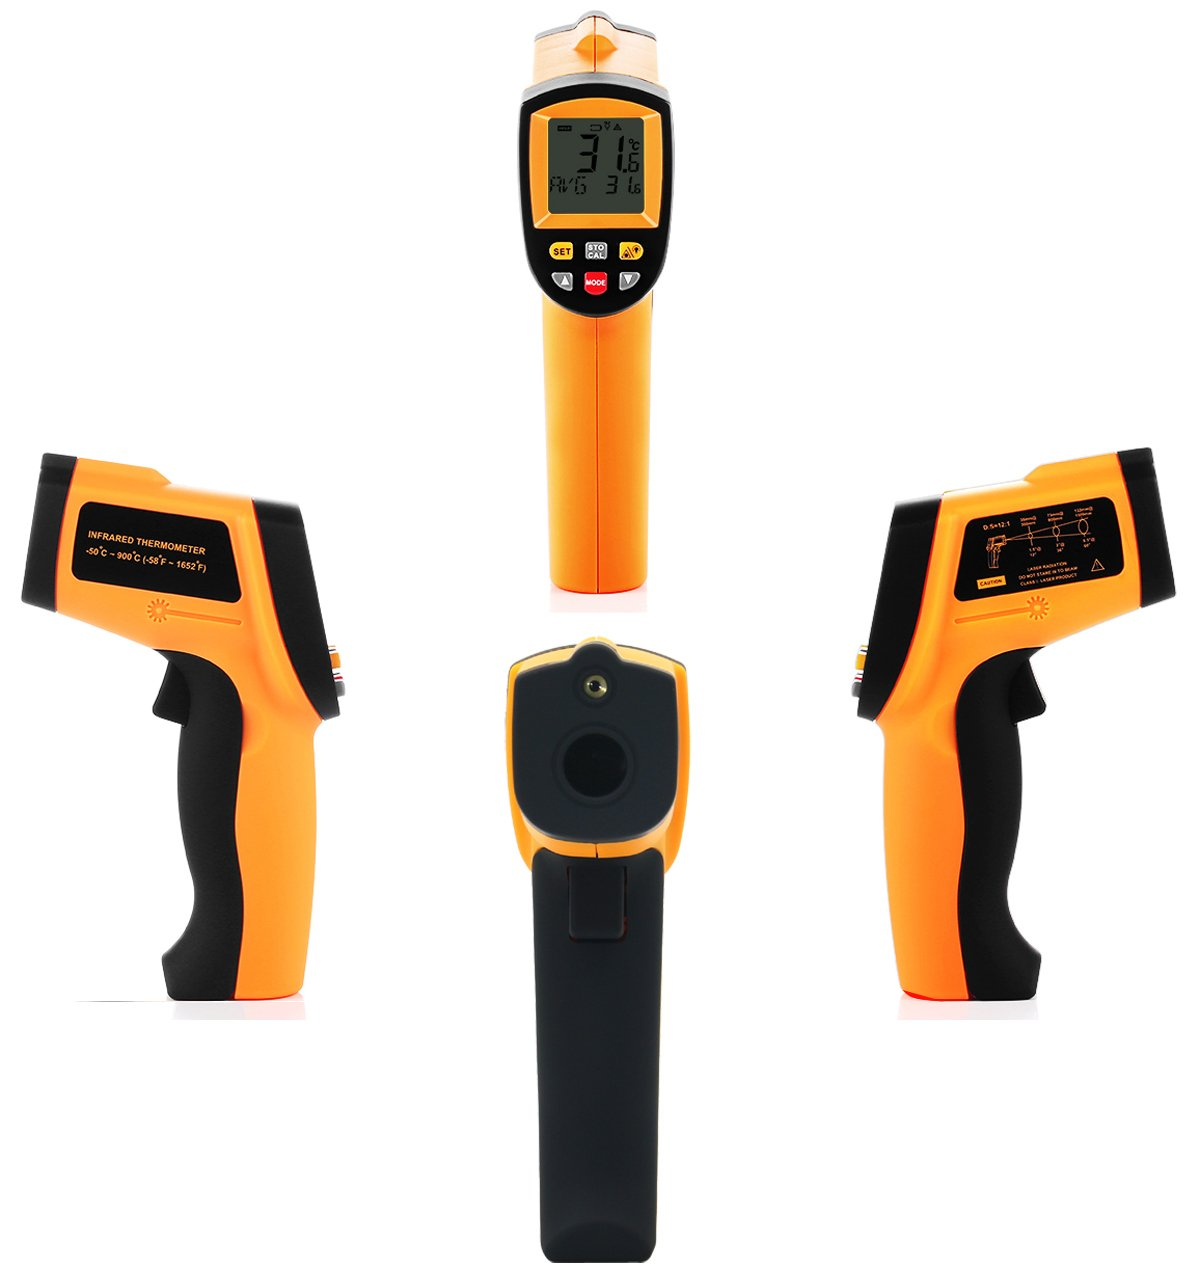 Tekit Non-Contact Laser Infrared Digital Thermometer, -50 ~ 900℃ Temperature Measuring Range, Handheld Laser Target Pointer / Backlight / Auto Power On/Off by Tekit (Image #3)